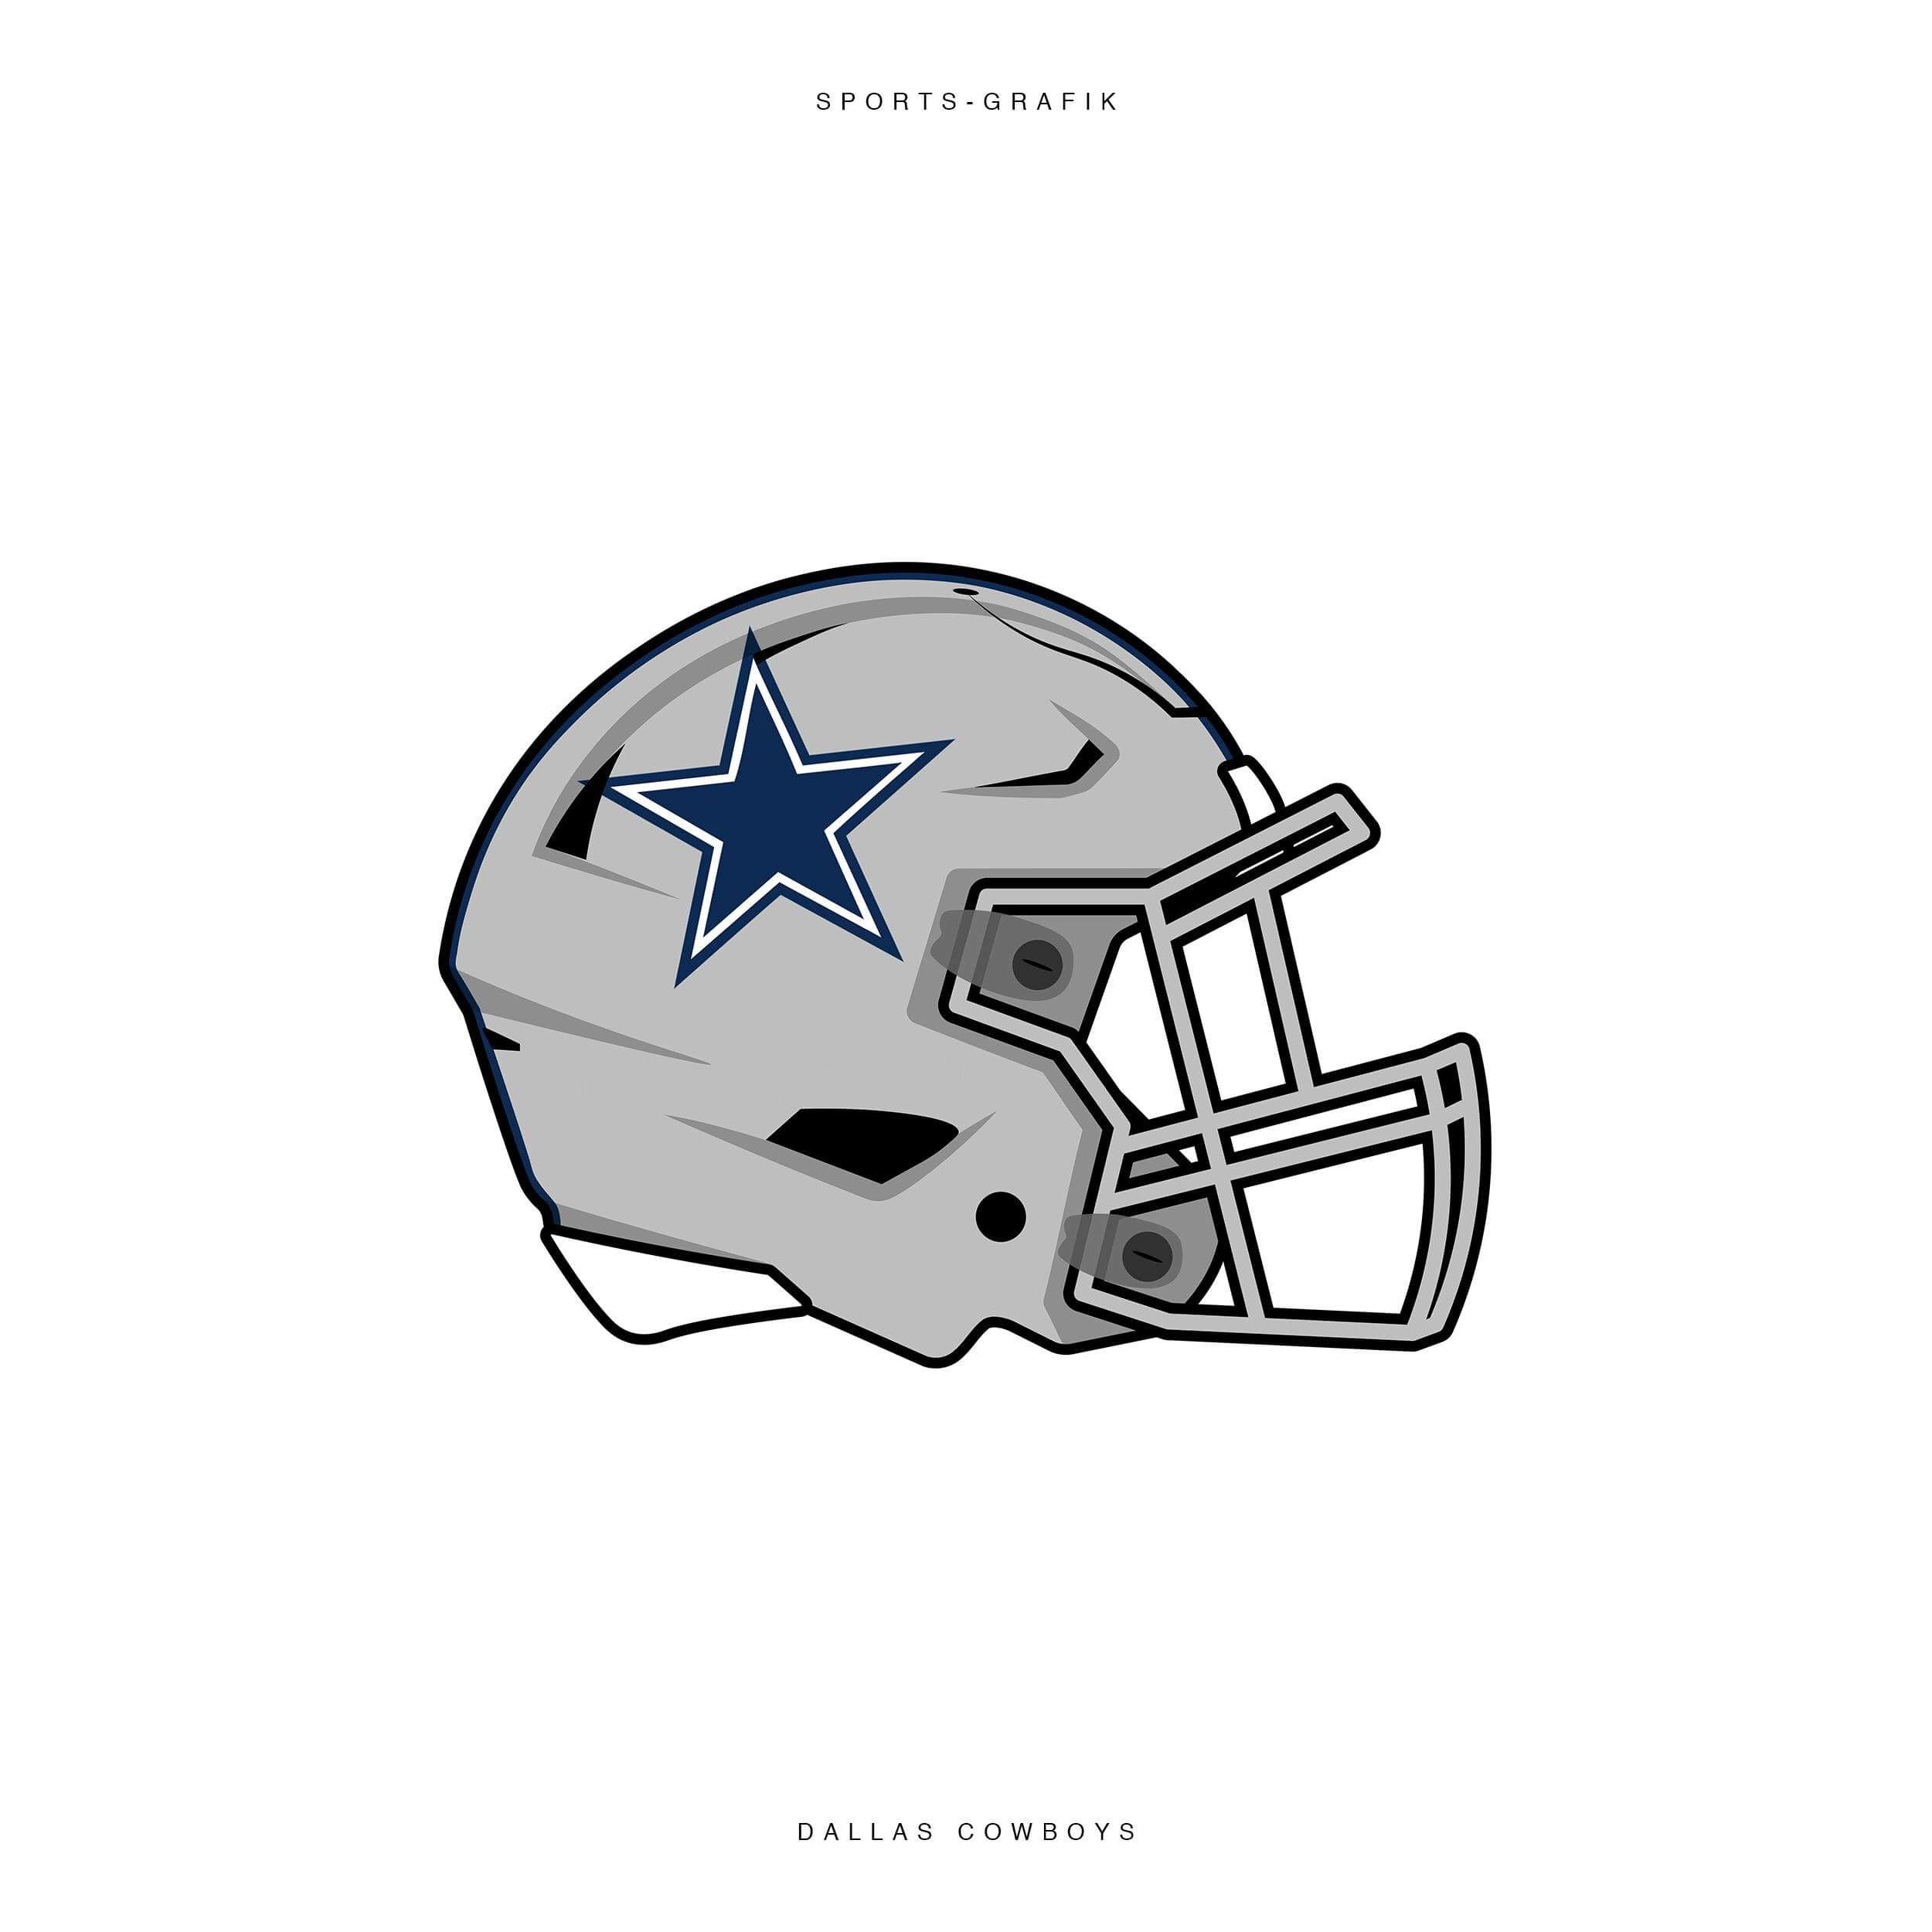 Dallas Cowboys Helmet Fanart NFL American Football